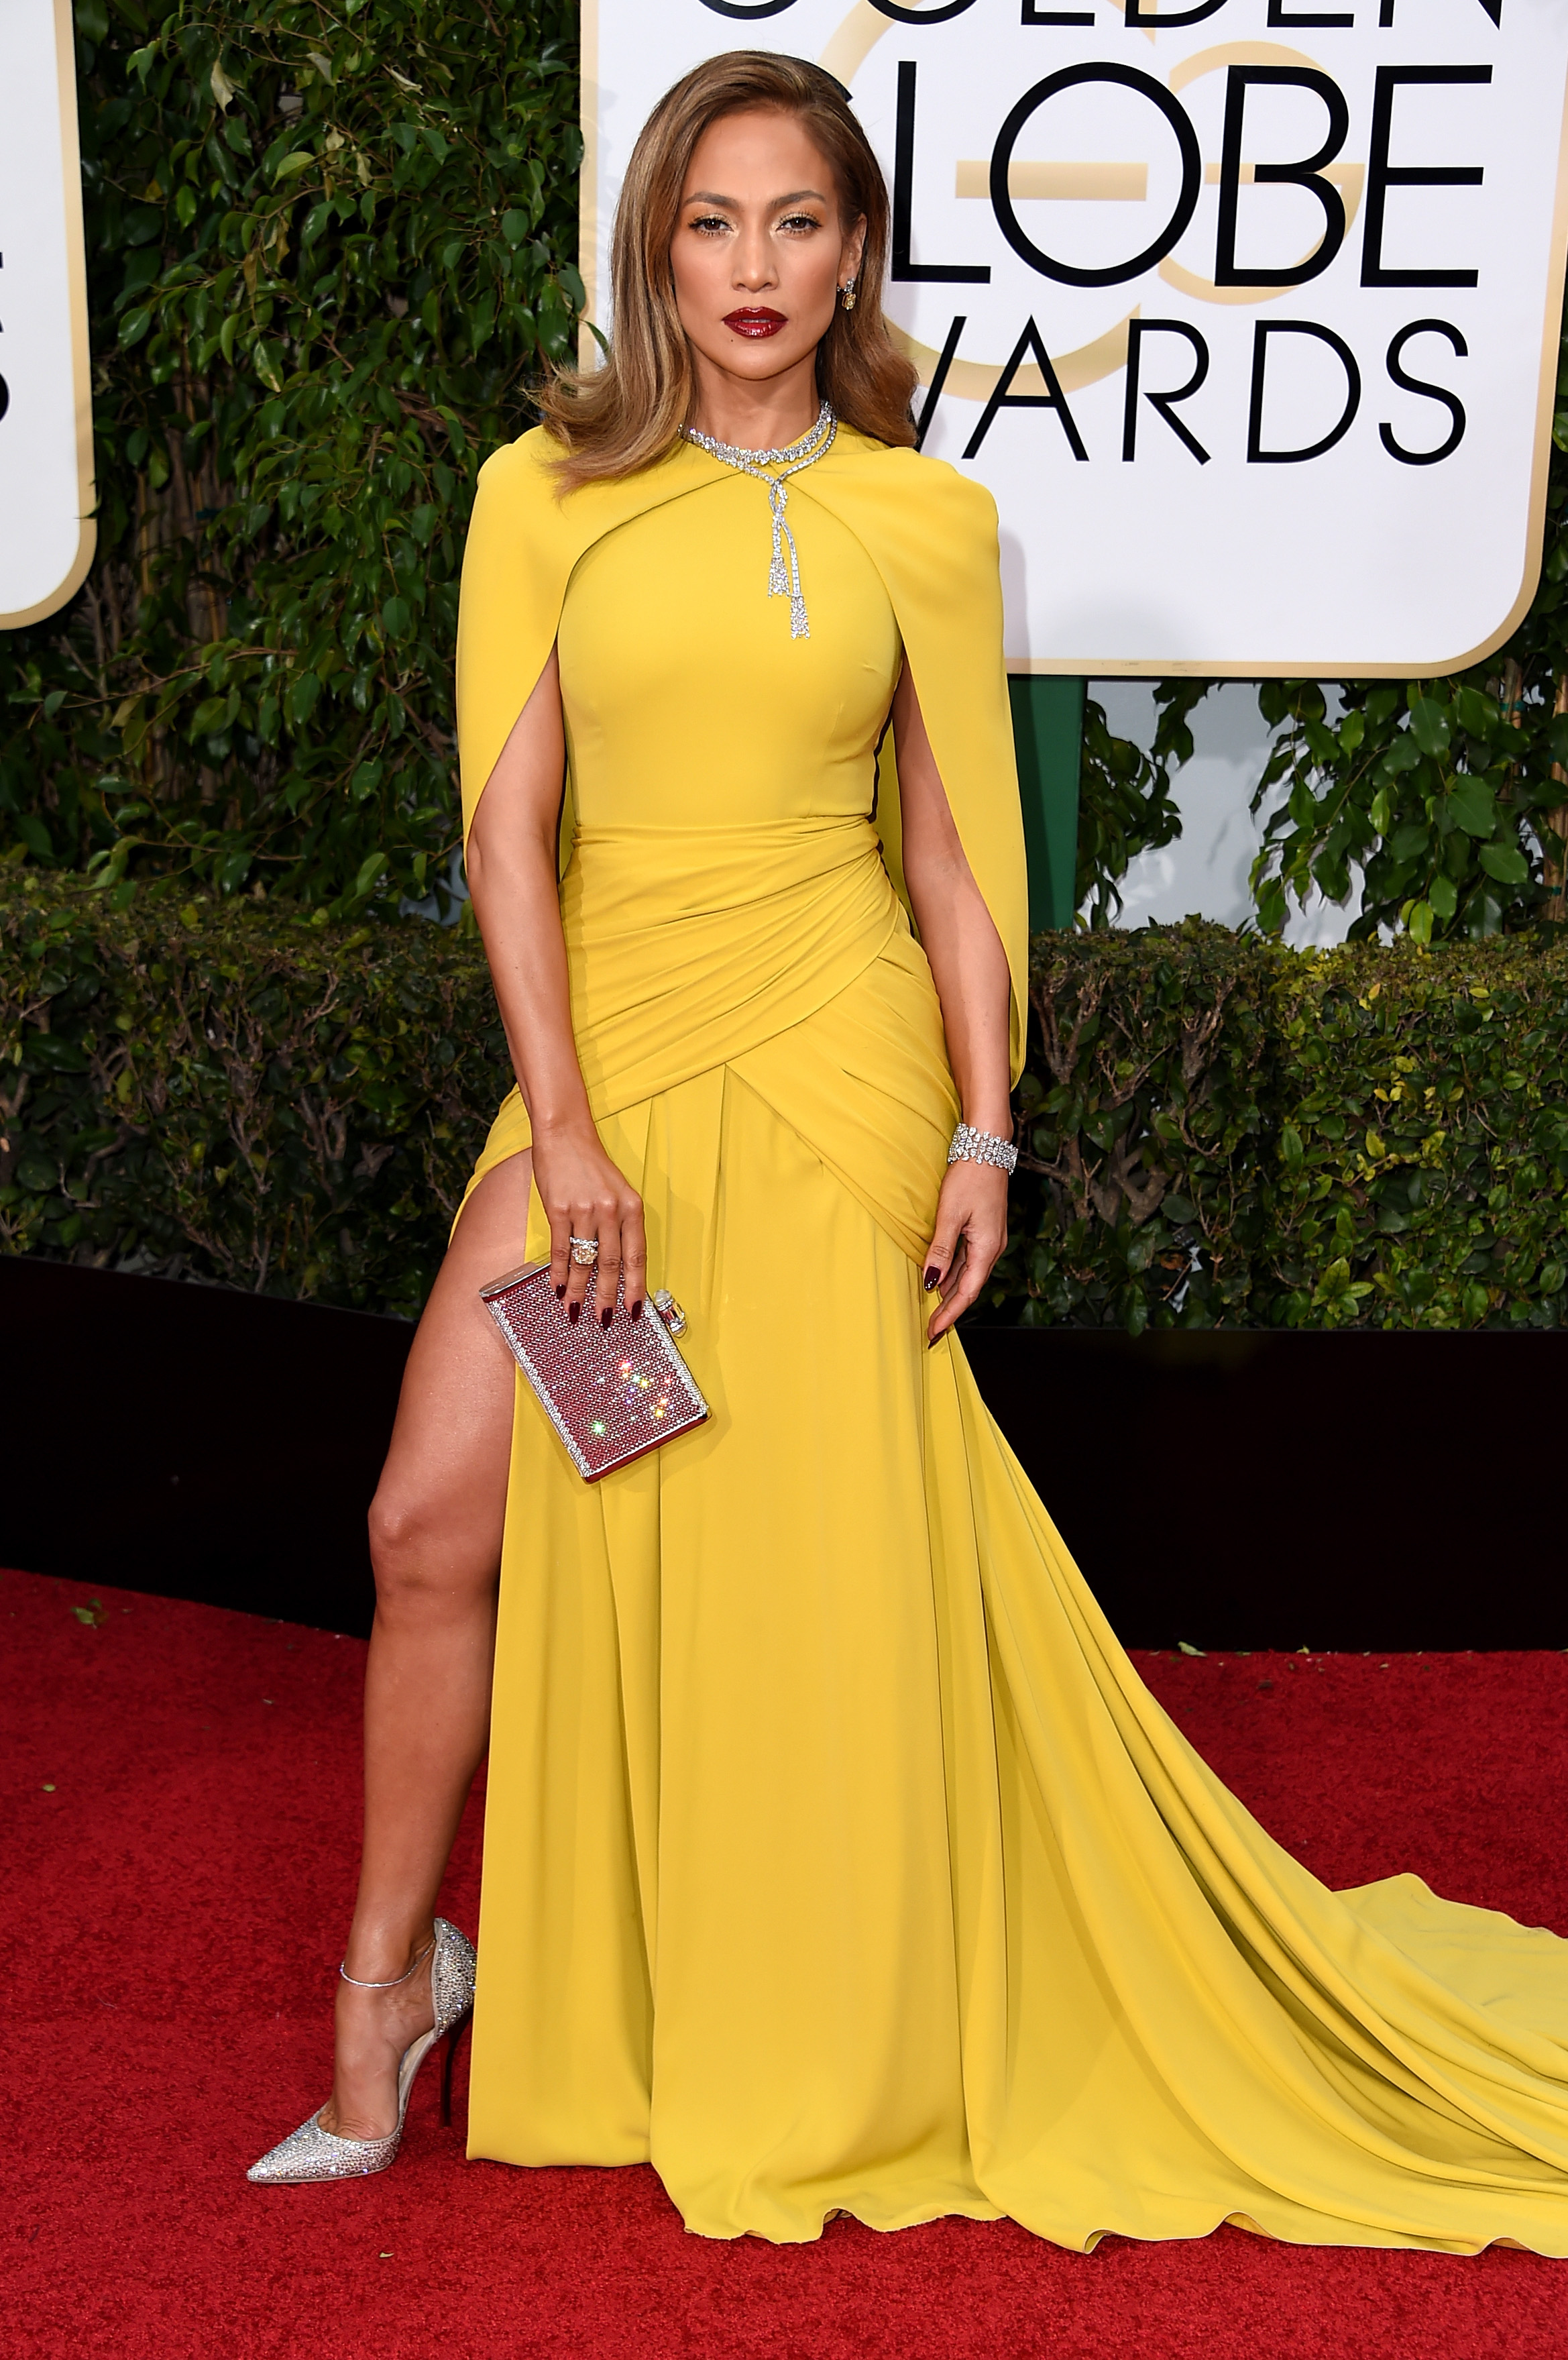 Jennifer Lopez arrives to the 73rd Annual Golden Globe Awards on Jan. 10, 2016 in Beverly Hills.